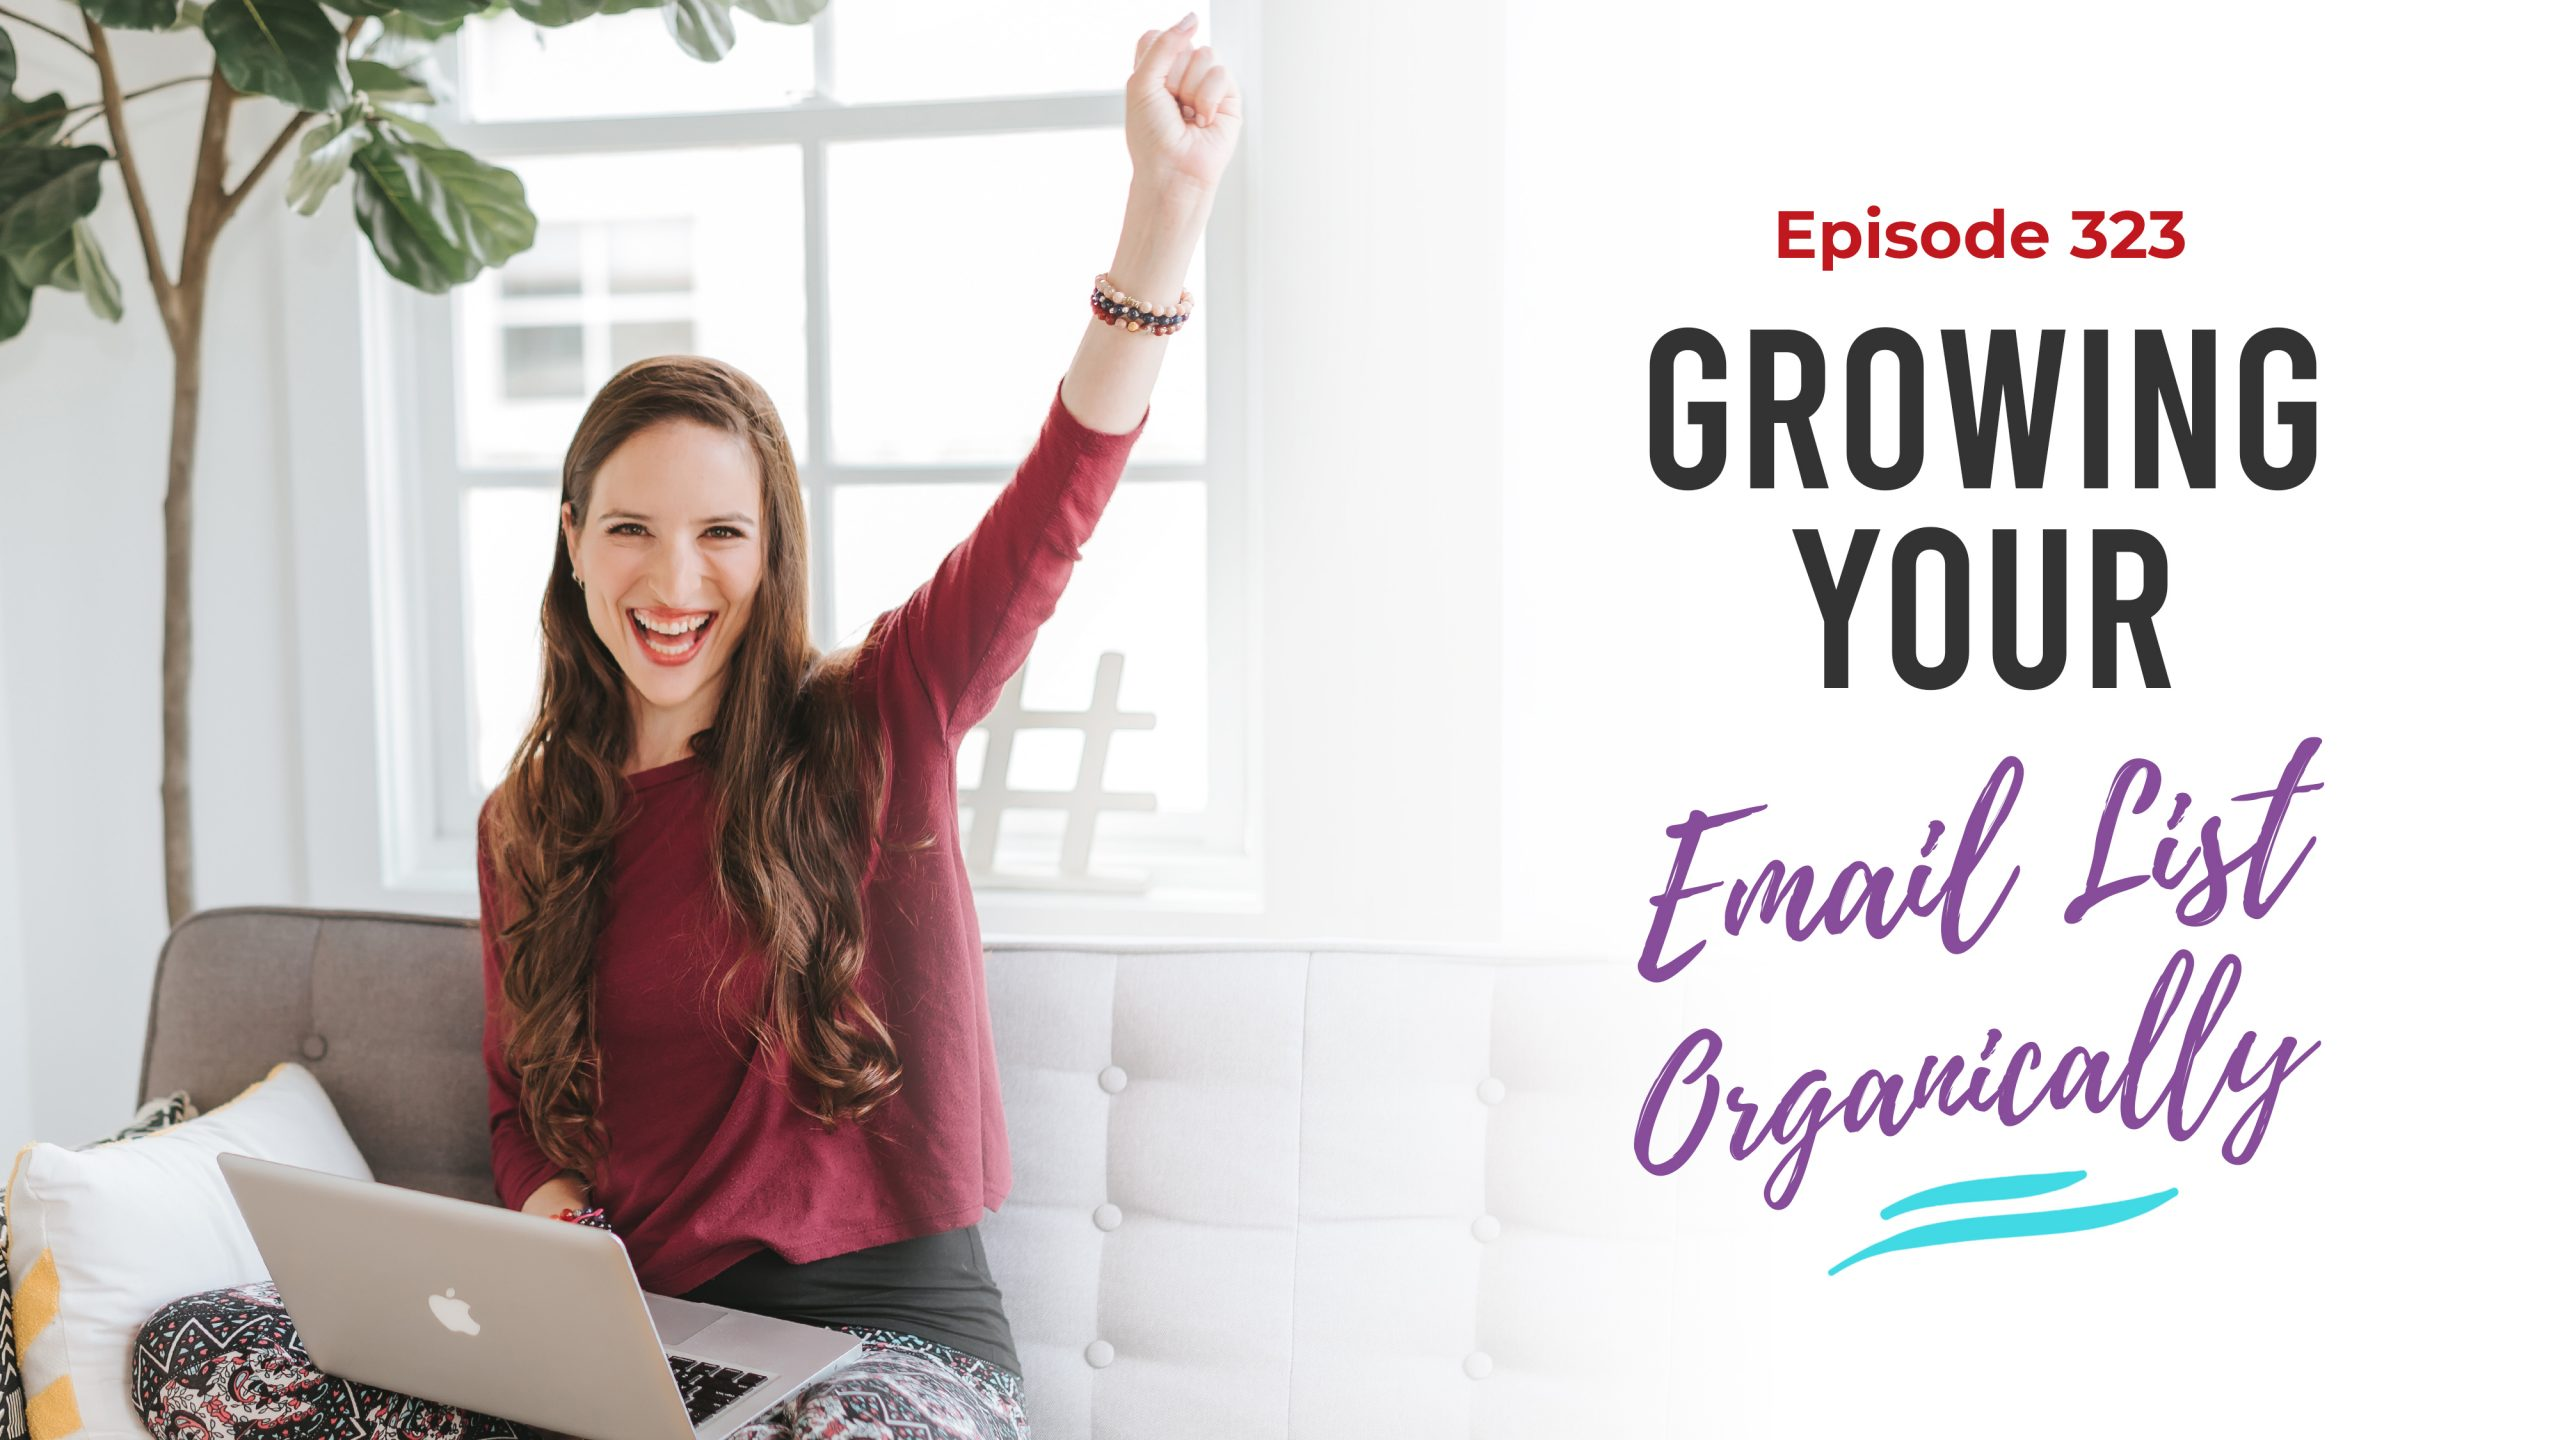 Ep. 323: Growing Your Email List Organically